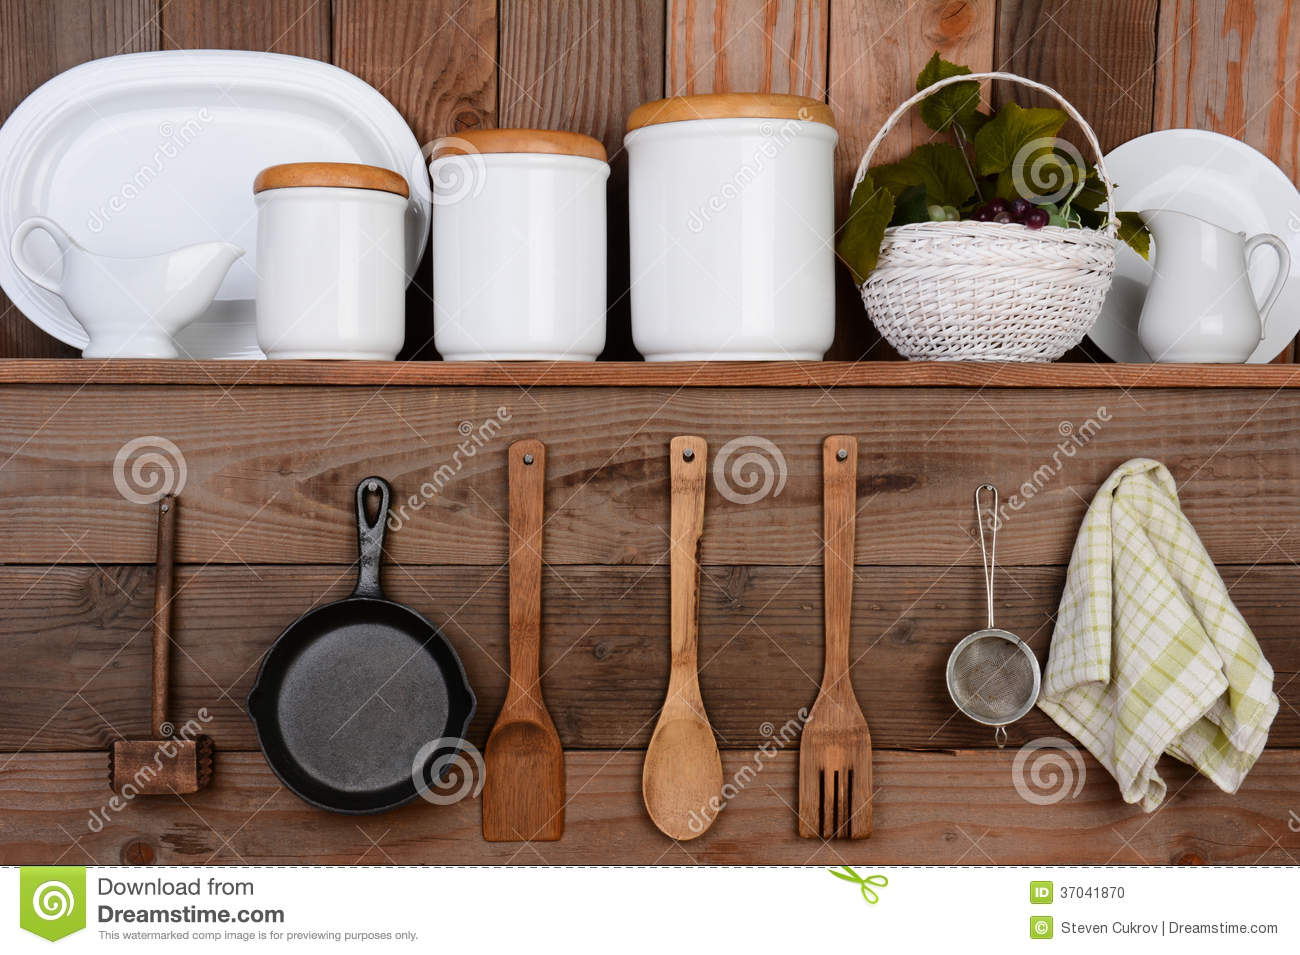 Rustic Kitchen Stock Photo - Image: 37041870